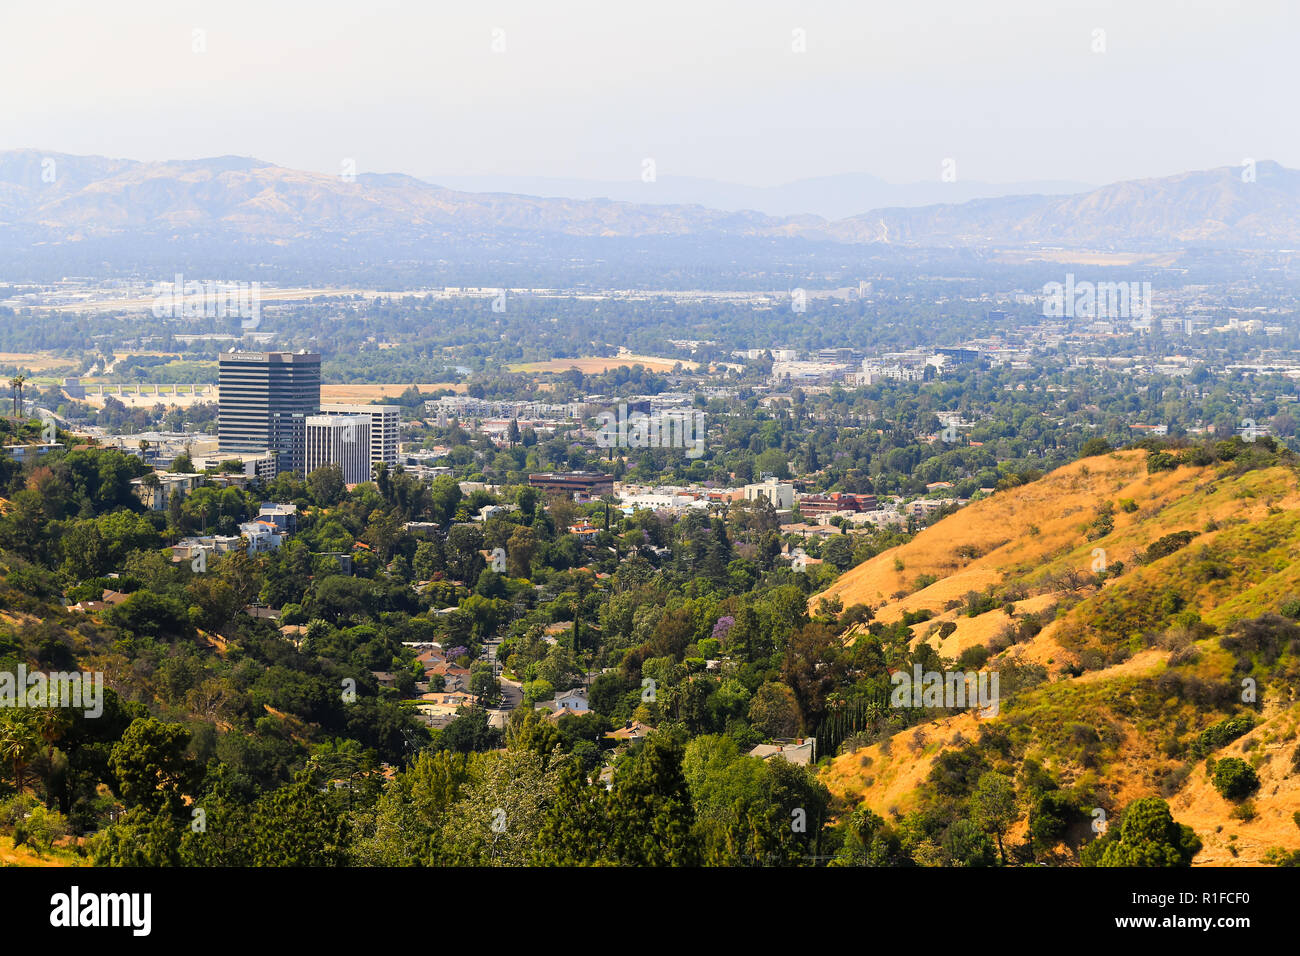 Mulholland Drive Stock Photos & Mulholland Drive Stock